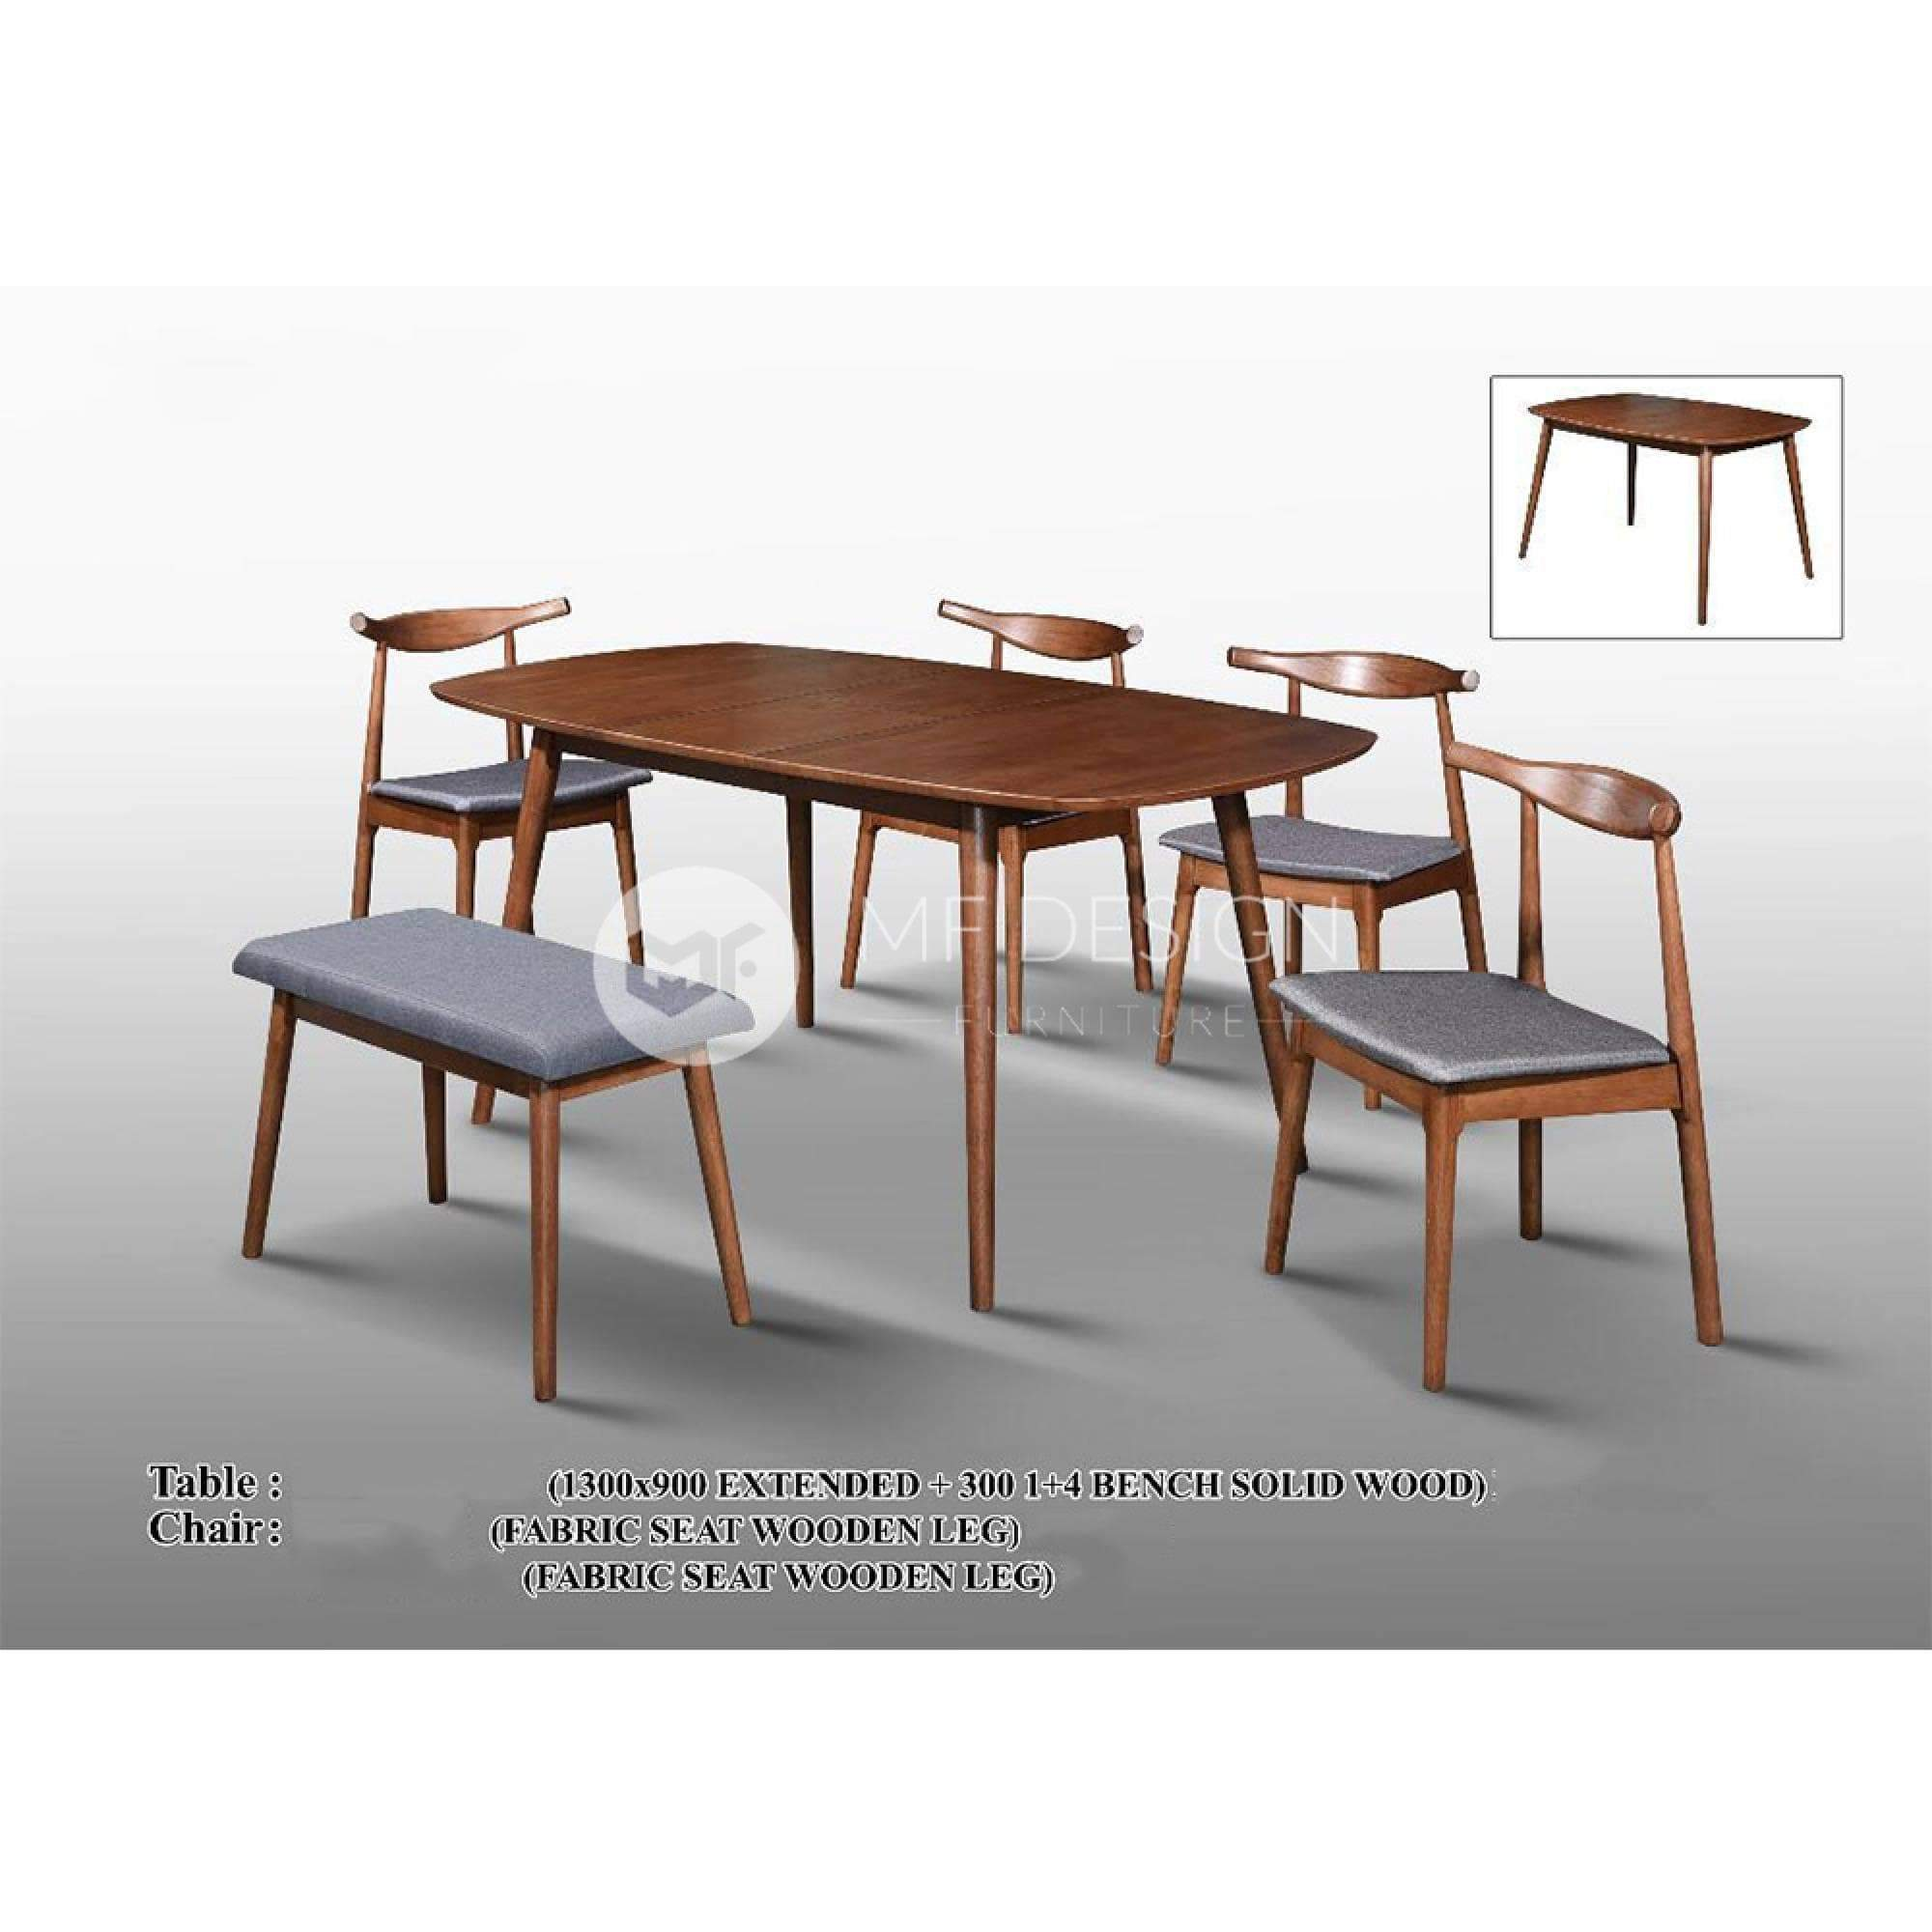 mfdesign88 Dining Sets Khaleesi Dining Set ( 1 Extended Table + 4 Chairs + 1 Bench )